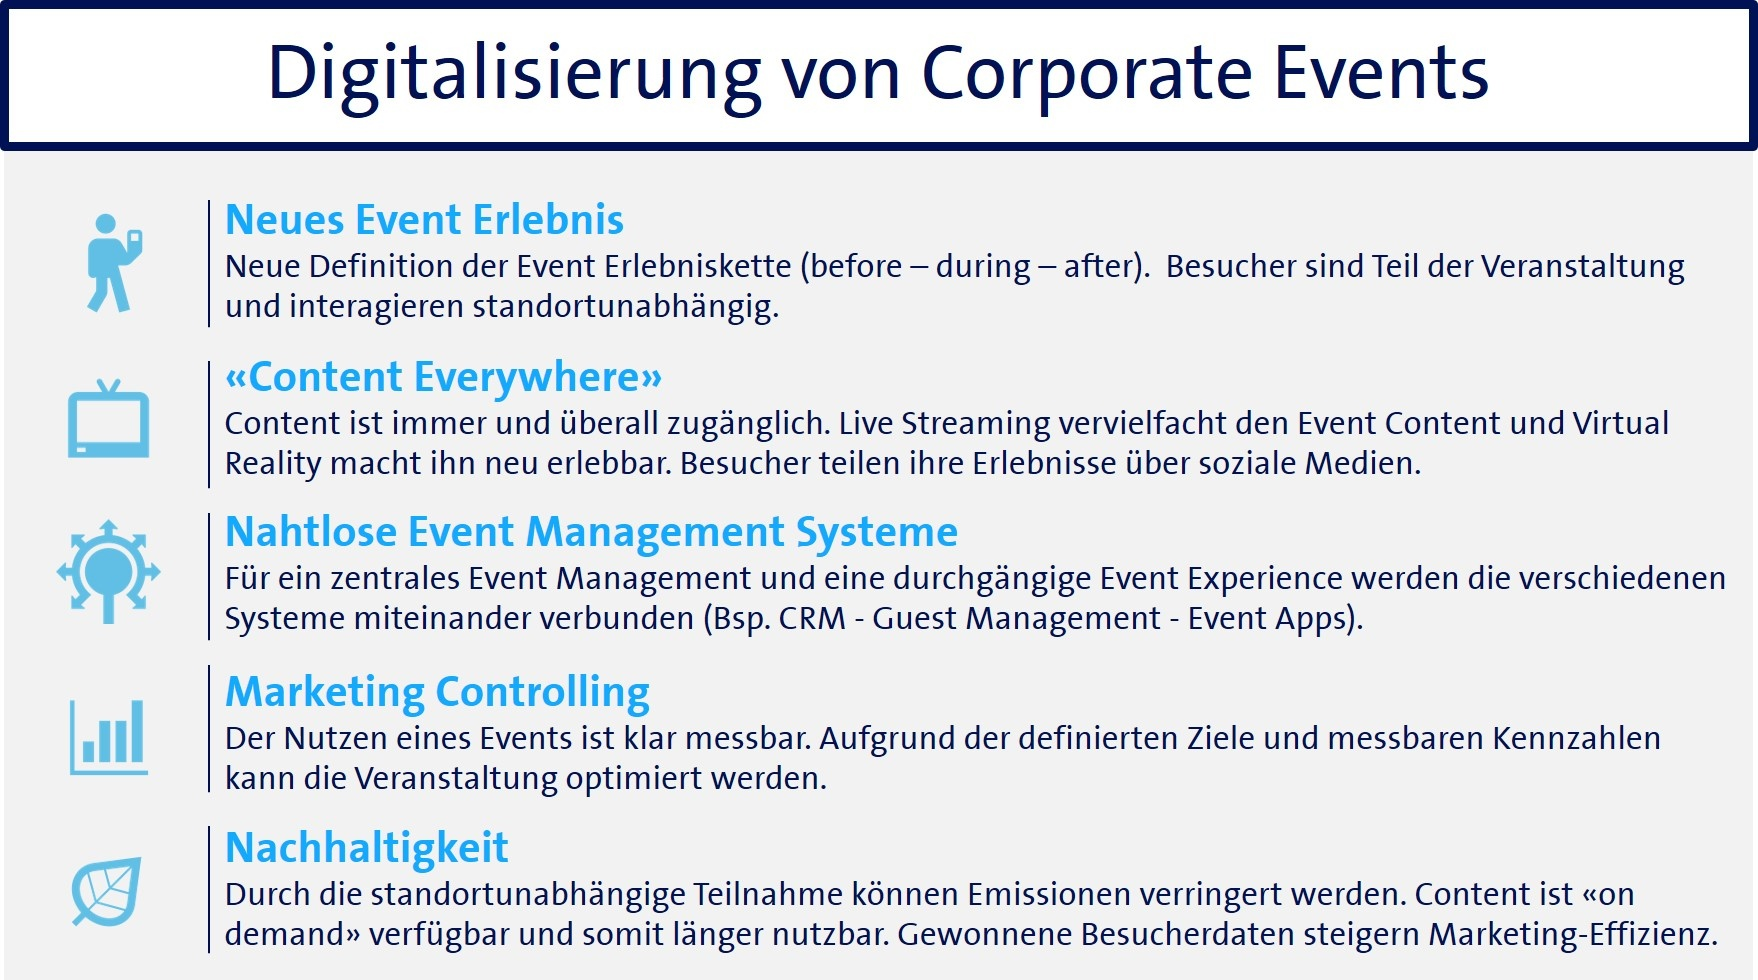 Digitalisierung von Corporate Events